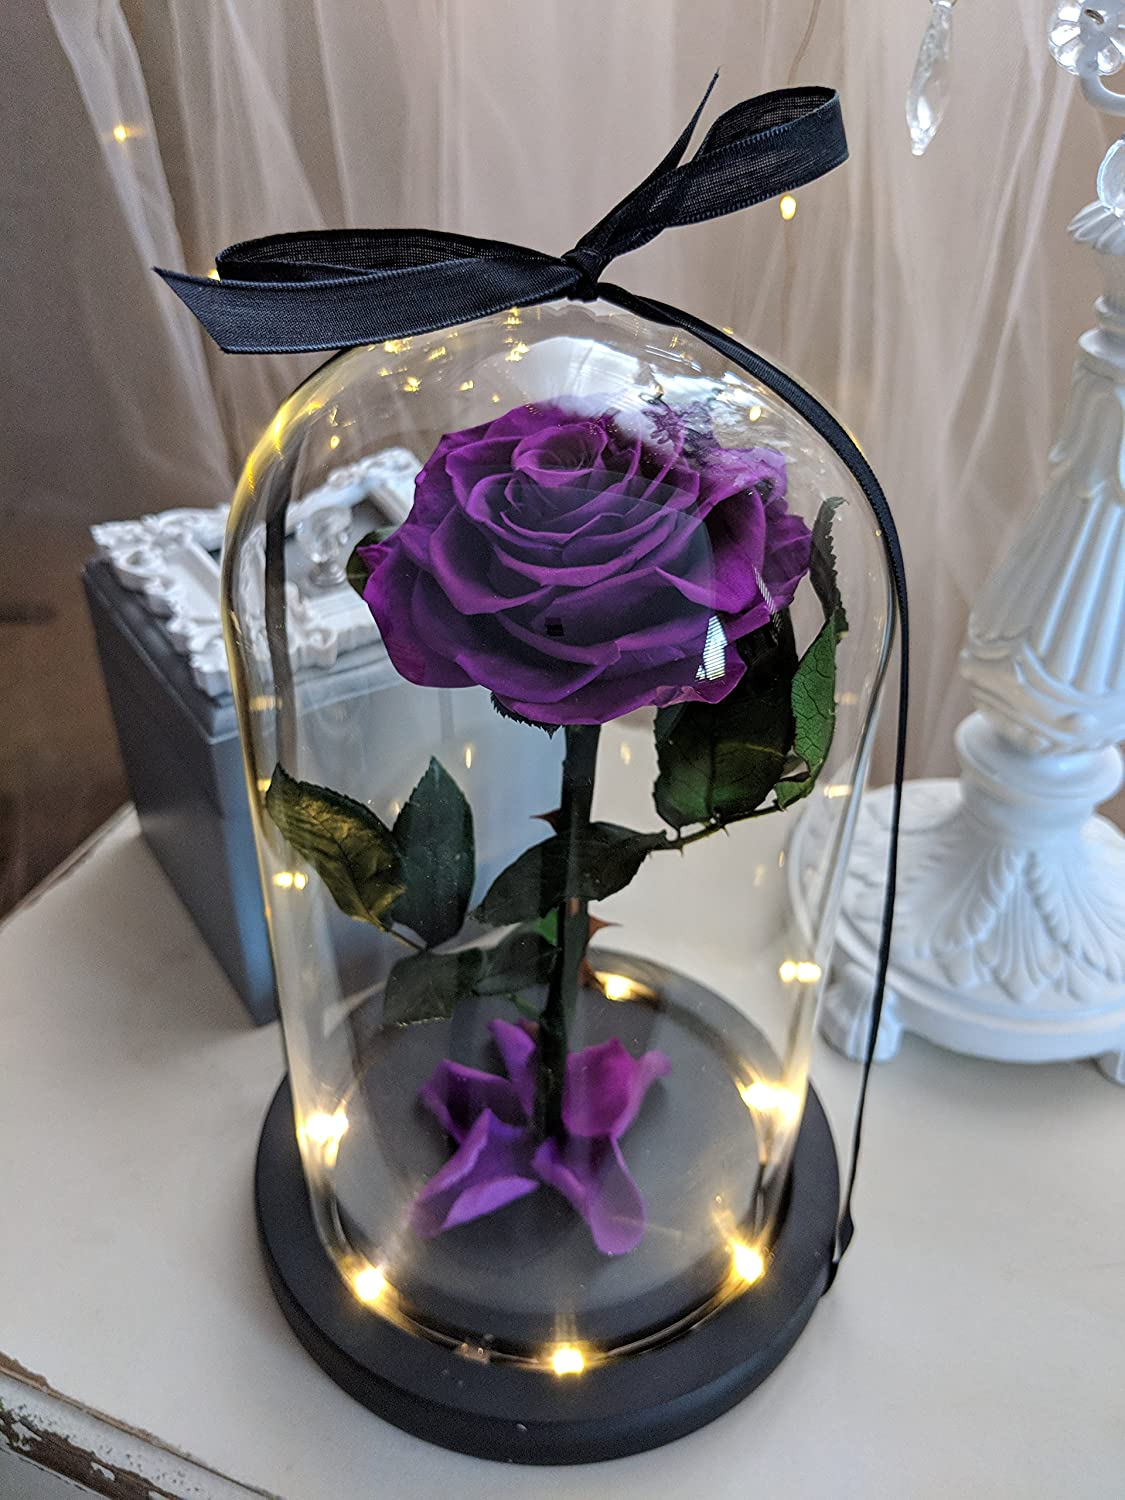 Engraved Beauty and the Beast Rose, Preserved Purple Enchanted Rose in glass Dome,Mother's Day Gift, Purple Rose in Glass Dome with LED lights,Anniversary Gift,Birthday gift,Personalized Engraved Gift Mother's Day Gift